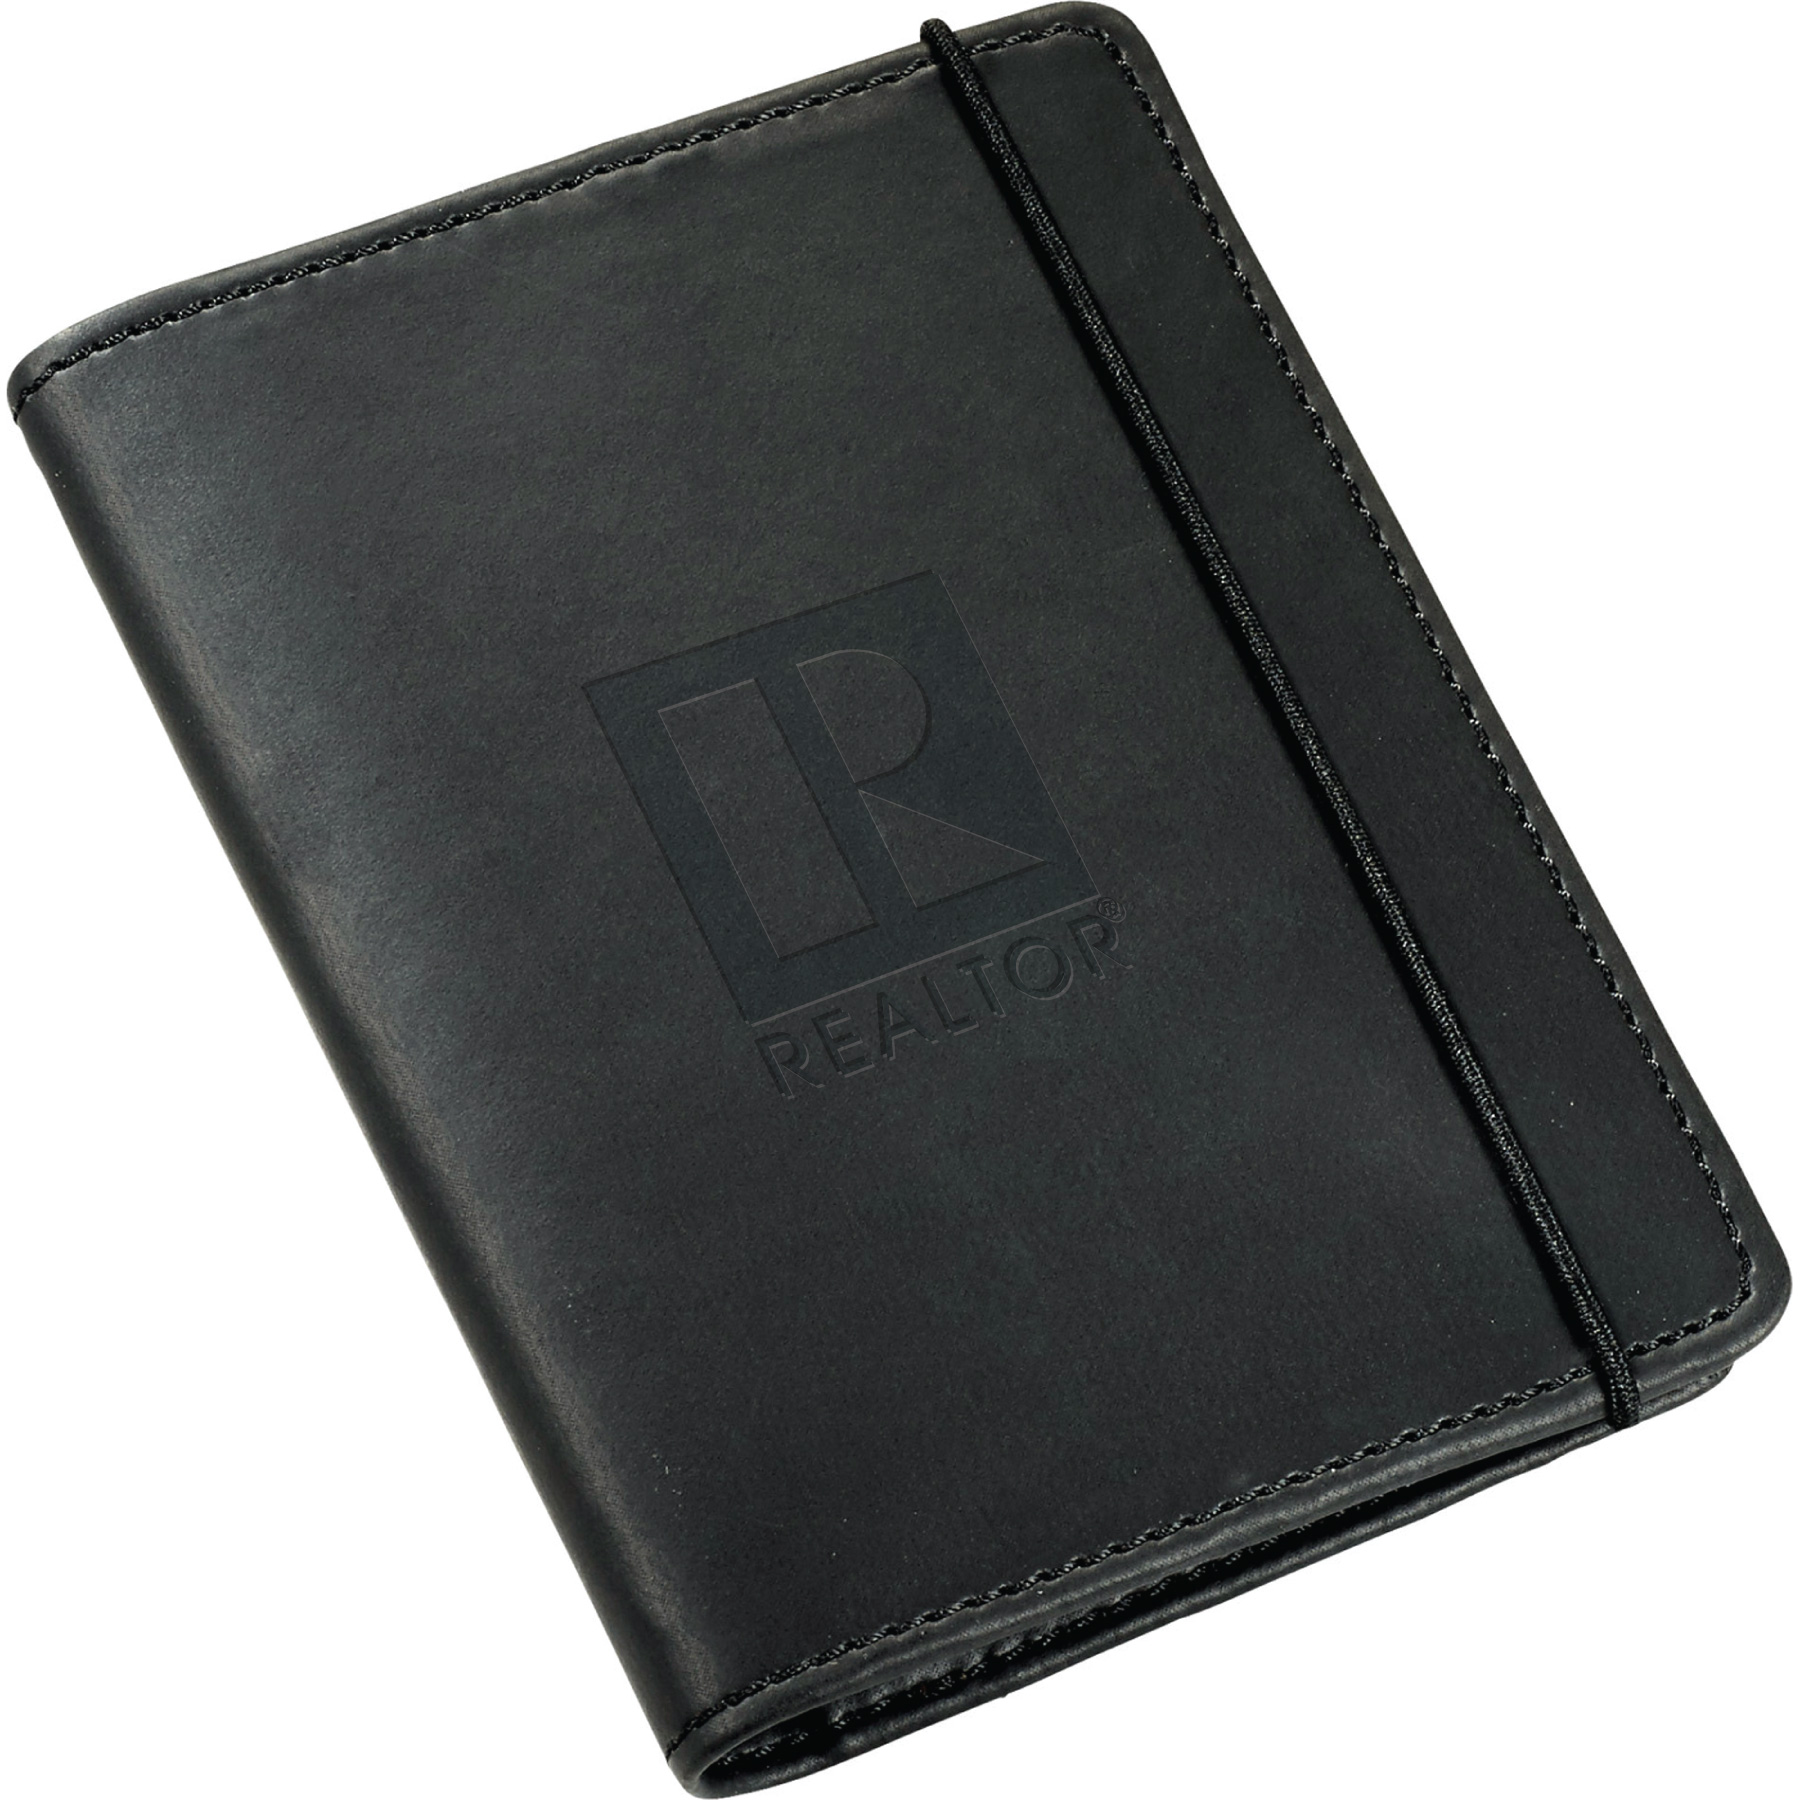 Soft Feel 24 Card Wallet Wallets,Cards,Business,Business Cards,Holders,Softs,Feels,Feals,Credit Cards,Credits